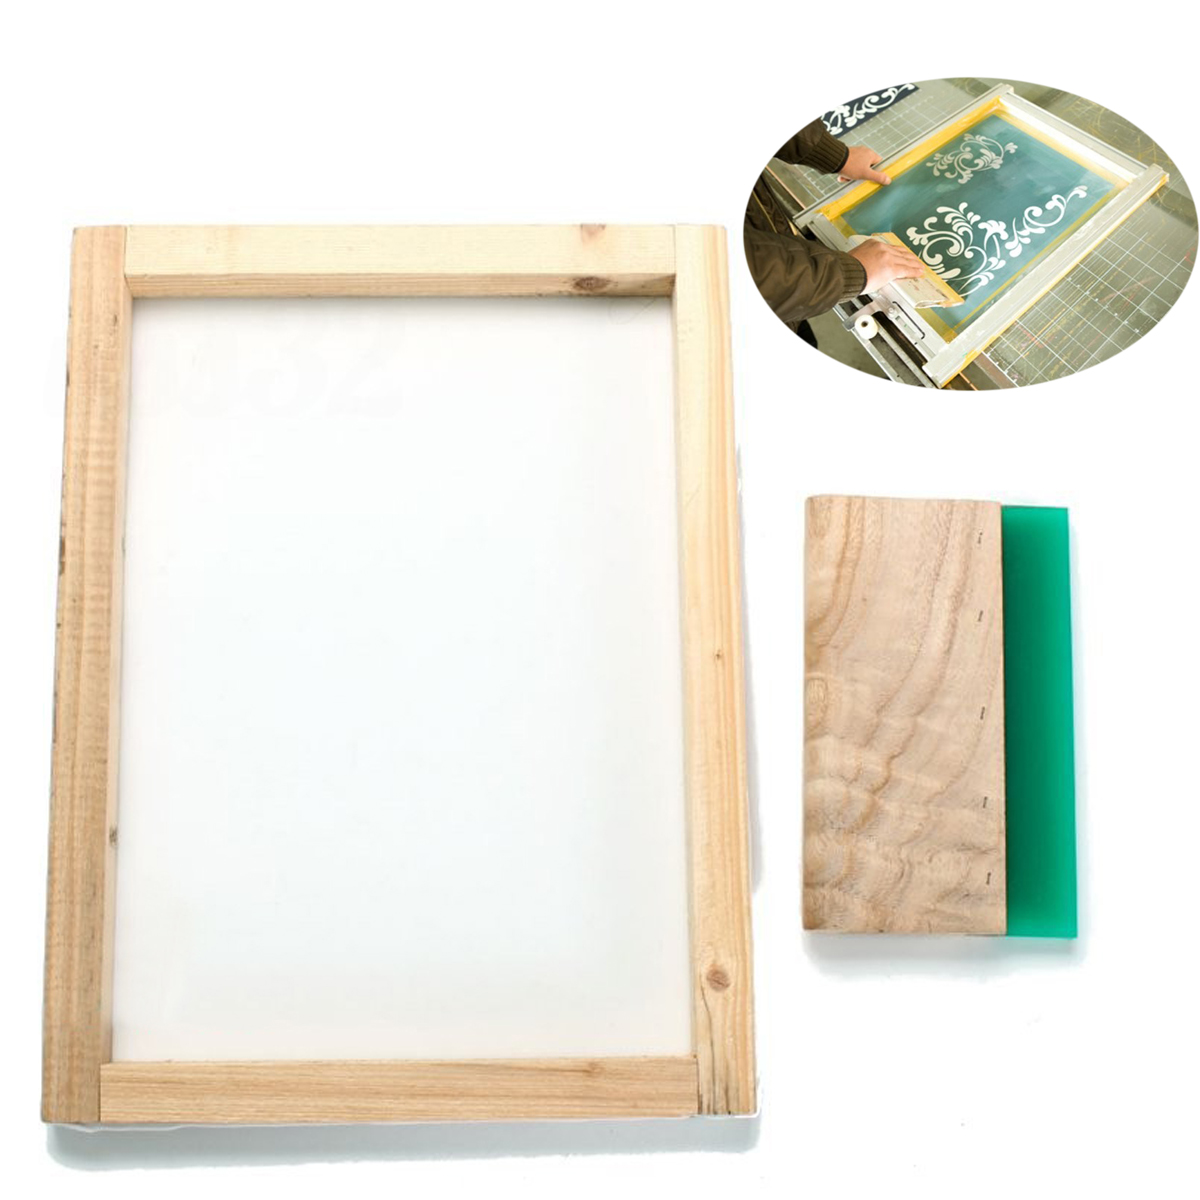 43T Mesh & 8 Wearproof Wooden Squeegee DIY Printing Blade Ink Scraper Mayitr with Silk Screen Printing Frame 300*400mm free shipping 3m squeegee high quality wrapping scraper with cloth pp sticker scraper car wrap tools felt scarper squeegee a02